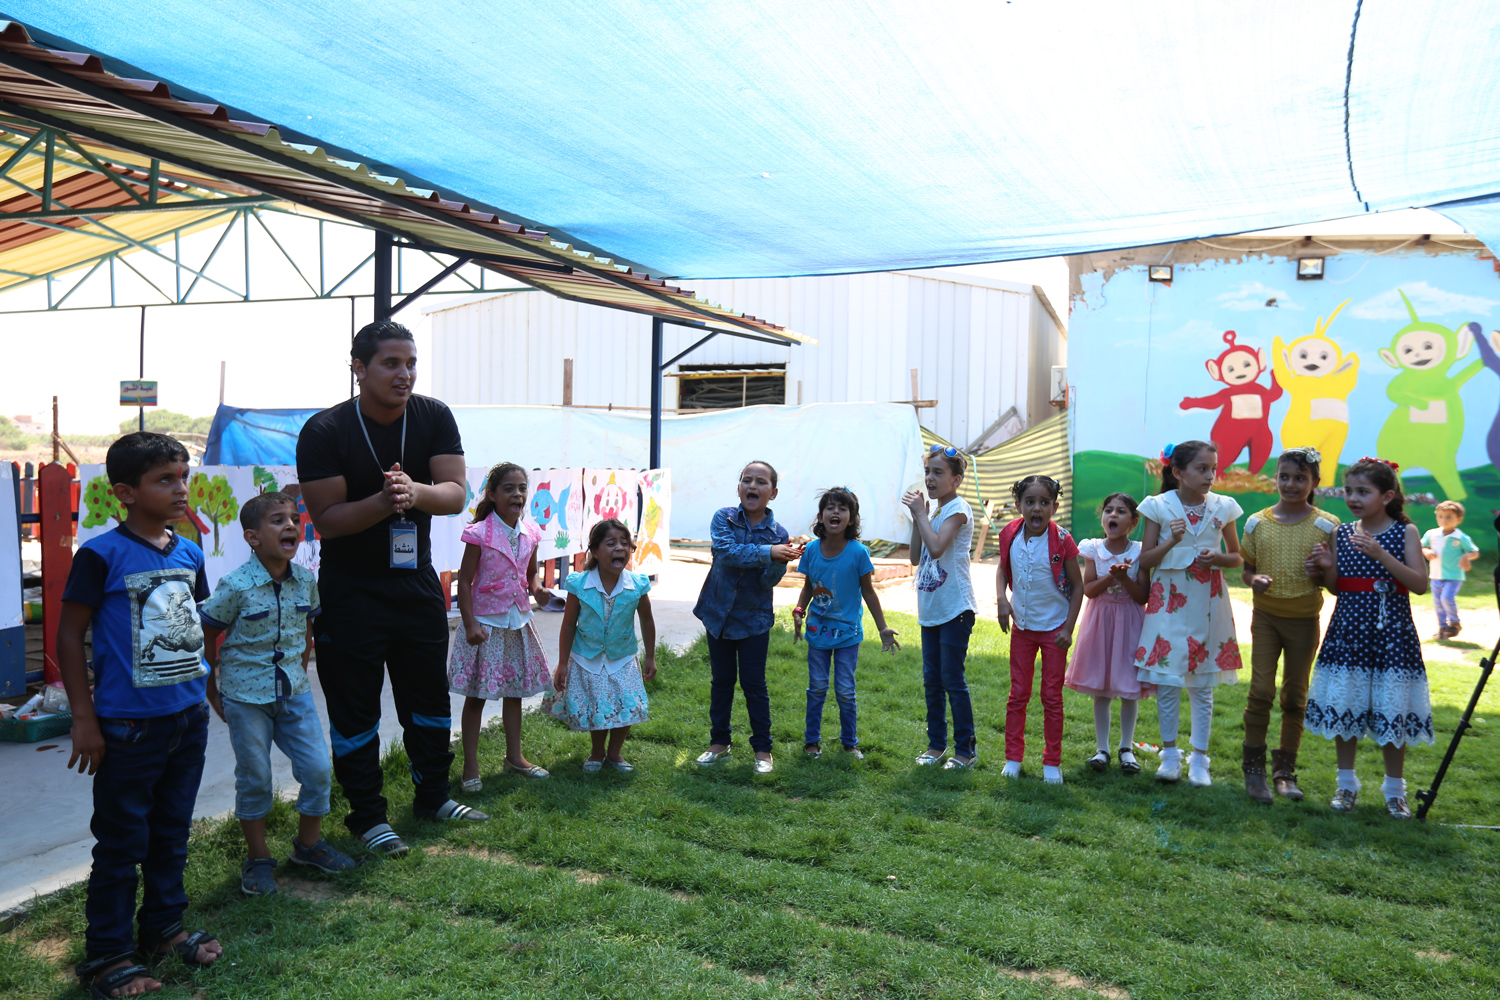 Nine-year-old Raghad Al Jarba and her sister Roaa participating with the animator during the recreational day conducted at Sharm Park by the UNRWA Relief and Social Services Programme. Photo credit: © 2016 UNRWA Photo by Tamer Hamam